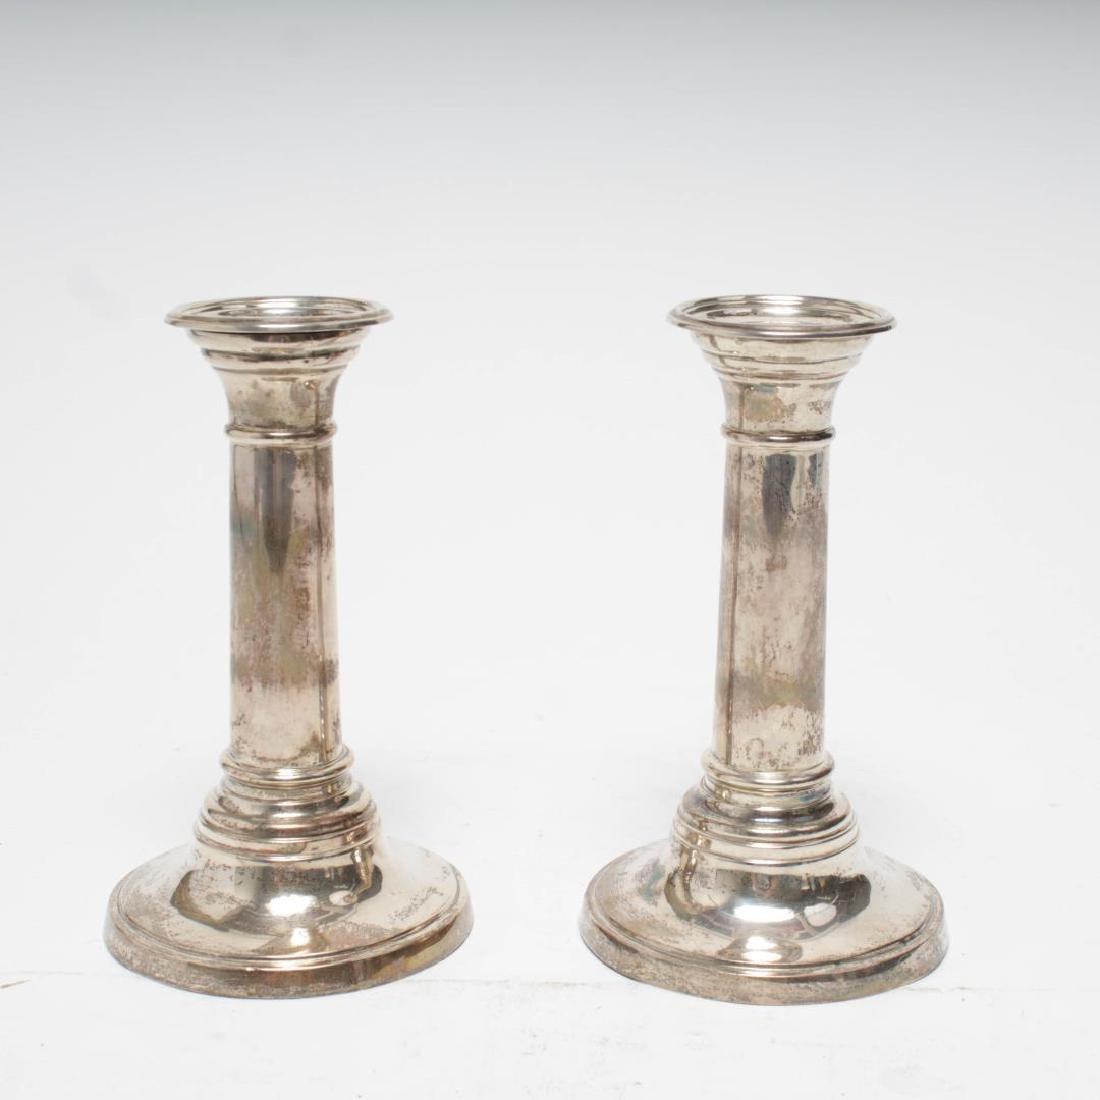 Antique Neoclassical Silver Candlesticks, Weighted